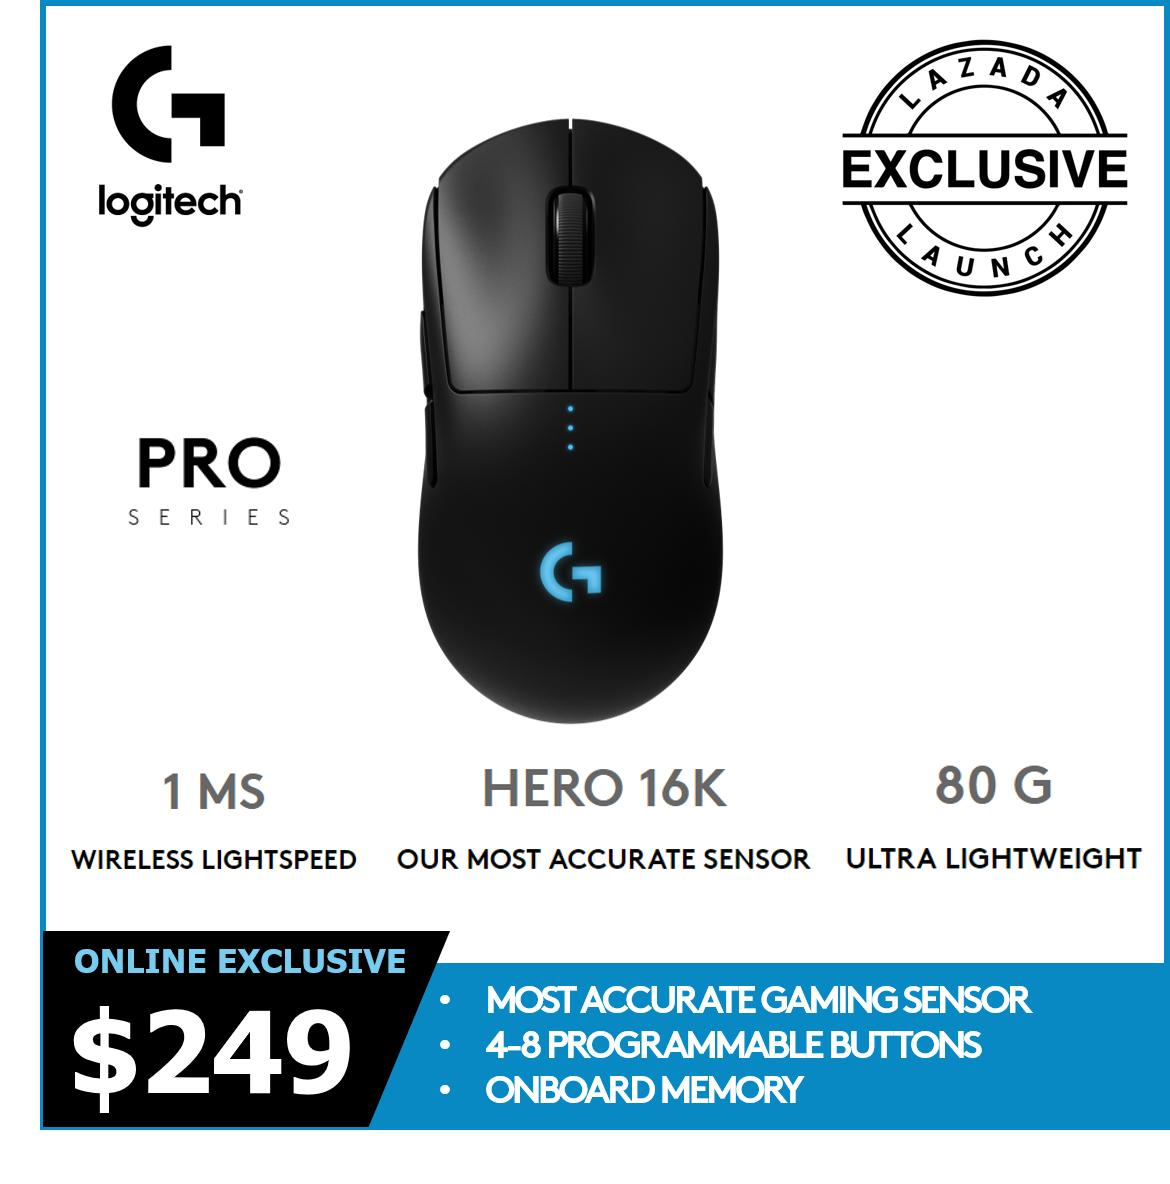 Logitech G Pro Hero Wireless Mouse